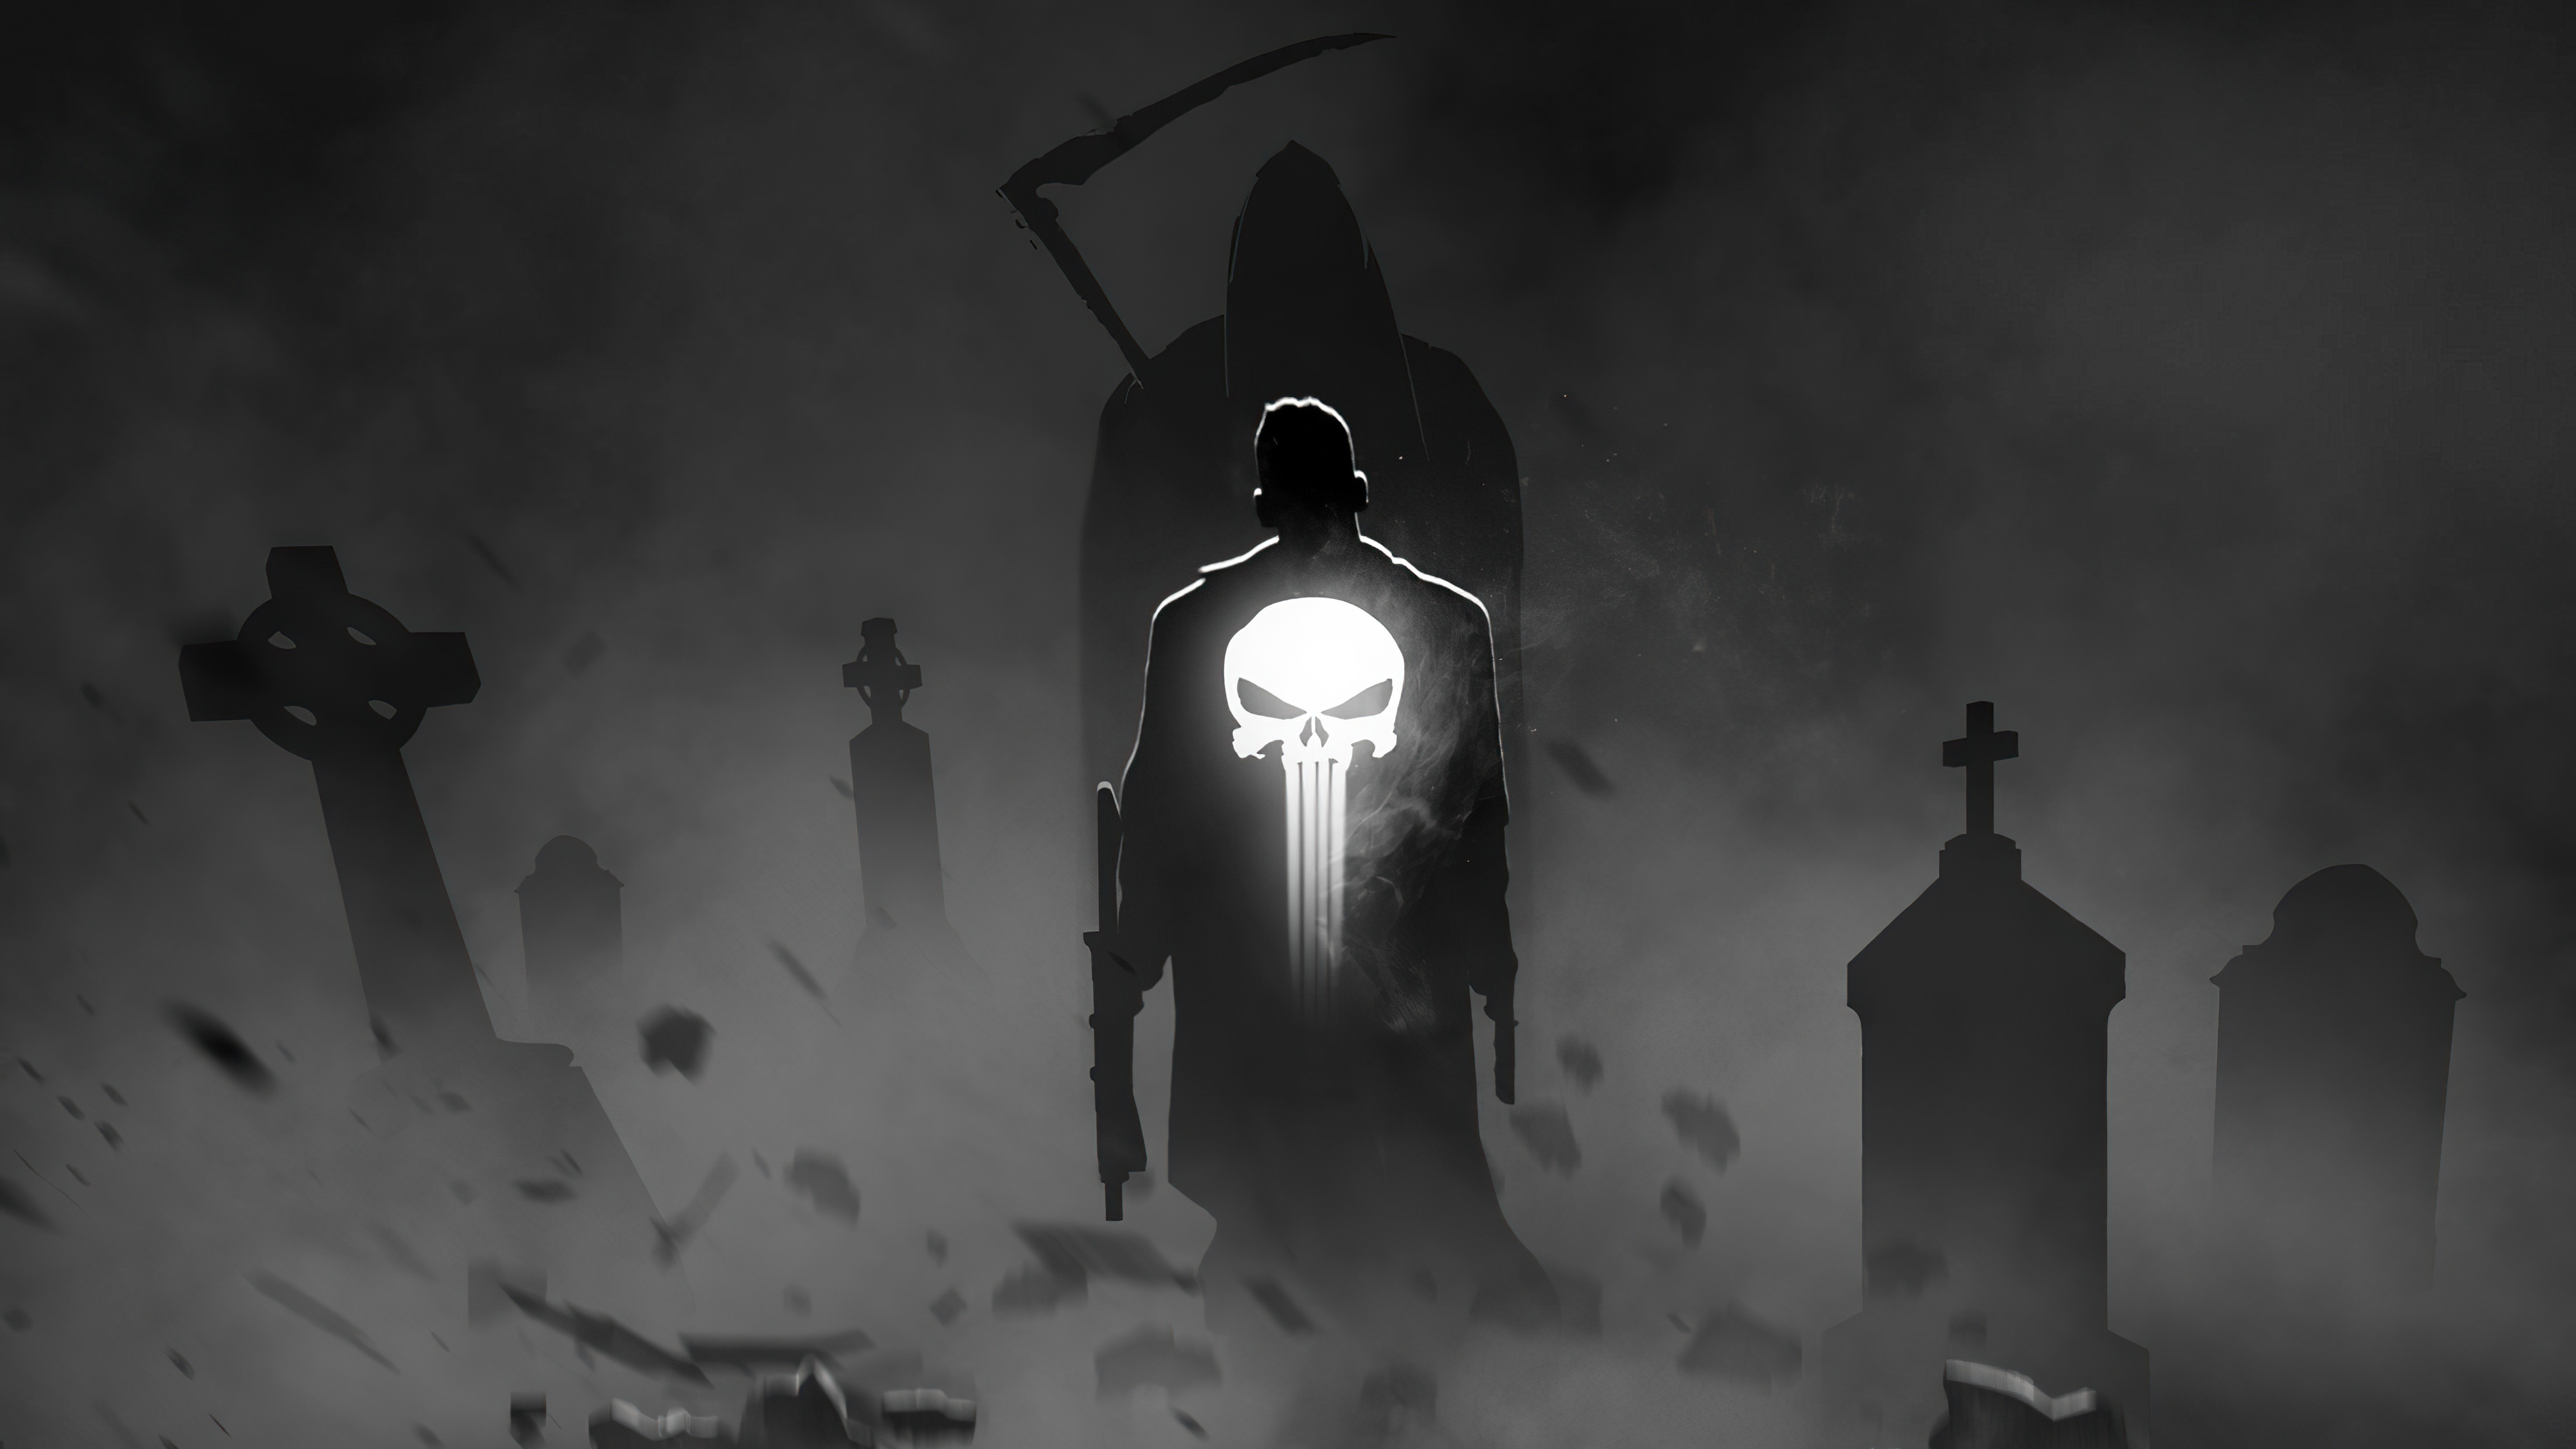 the punisher by bosslogic 4k 1619216467 - The Punisher By Bosslogic 4k - The Punisher By Bosslogic 4k wallpapers